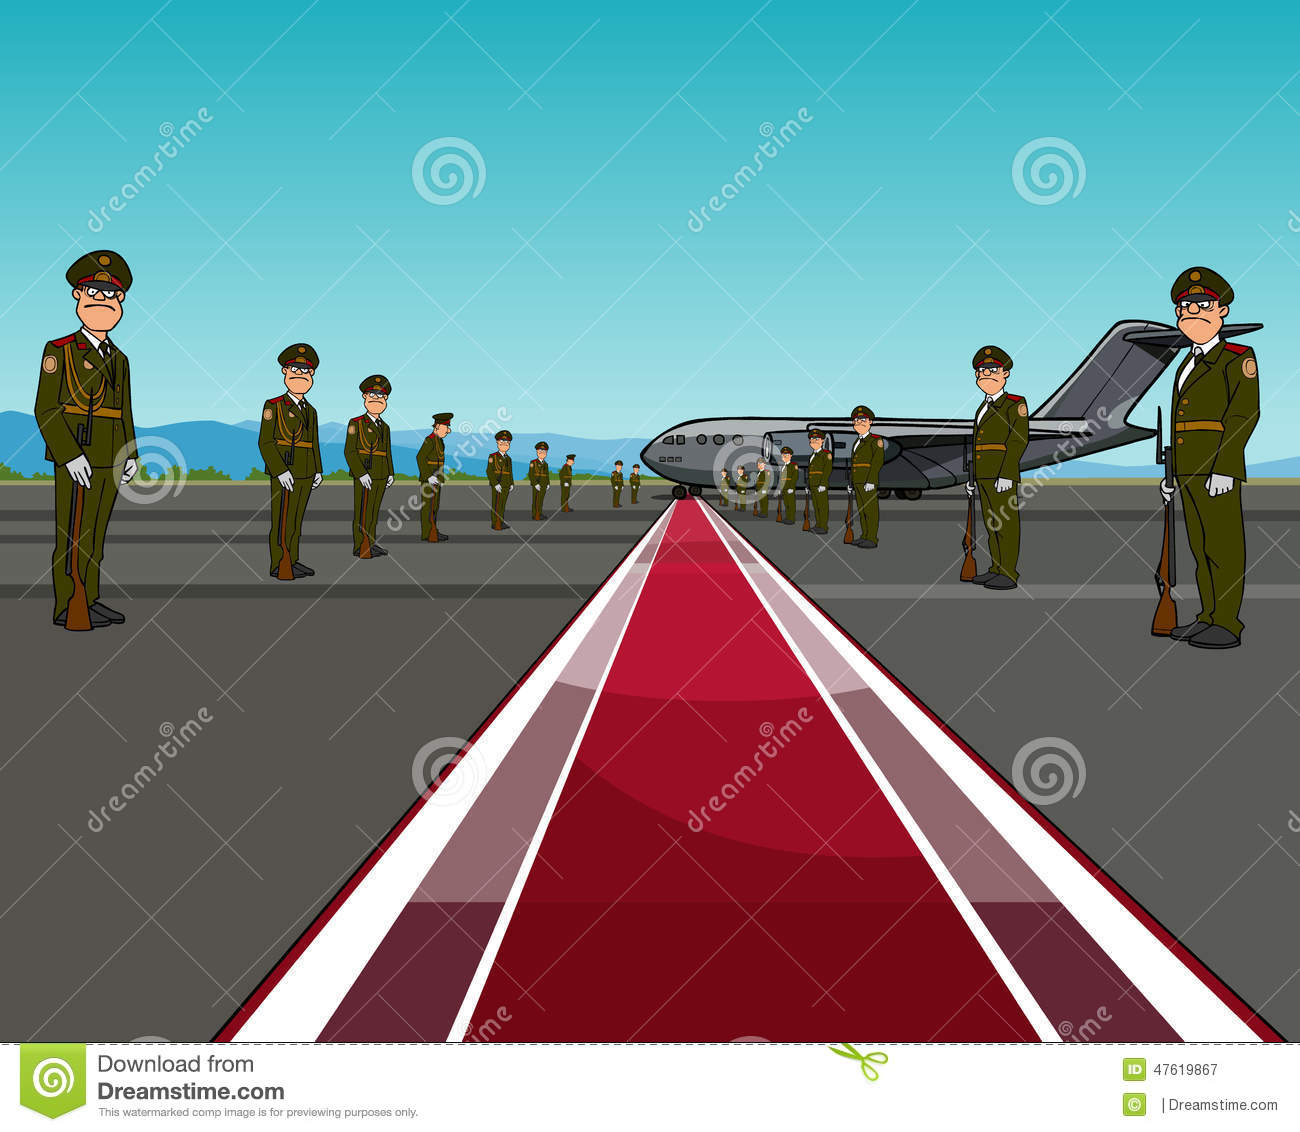 men in uniform standing on opposite sides of the red carpet about aircraft stock vector image. Black Bedroom Furniture Sets. Home Design Ideas